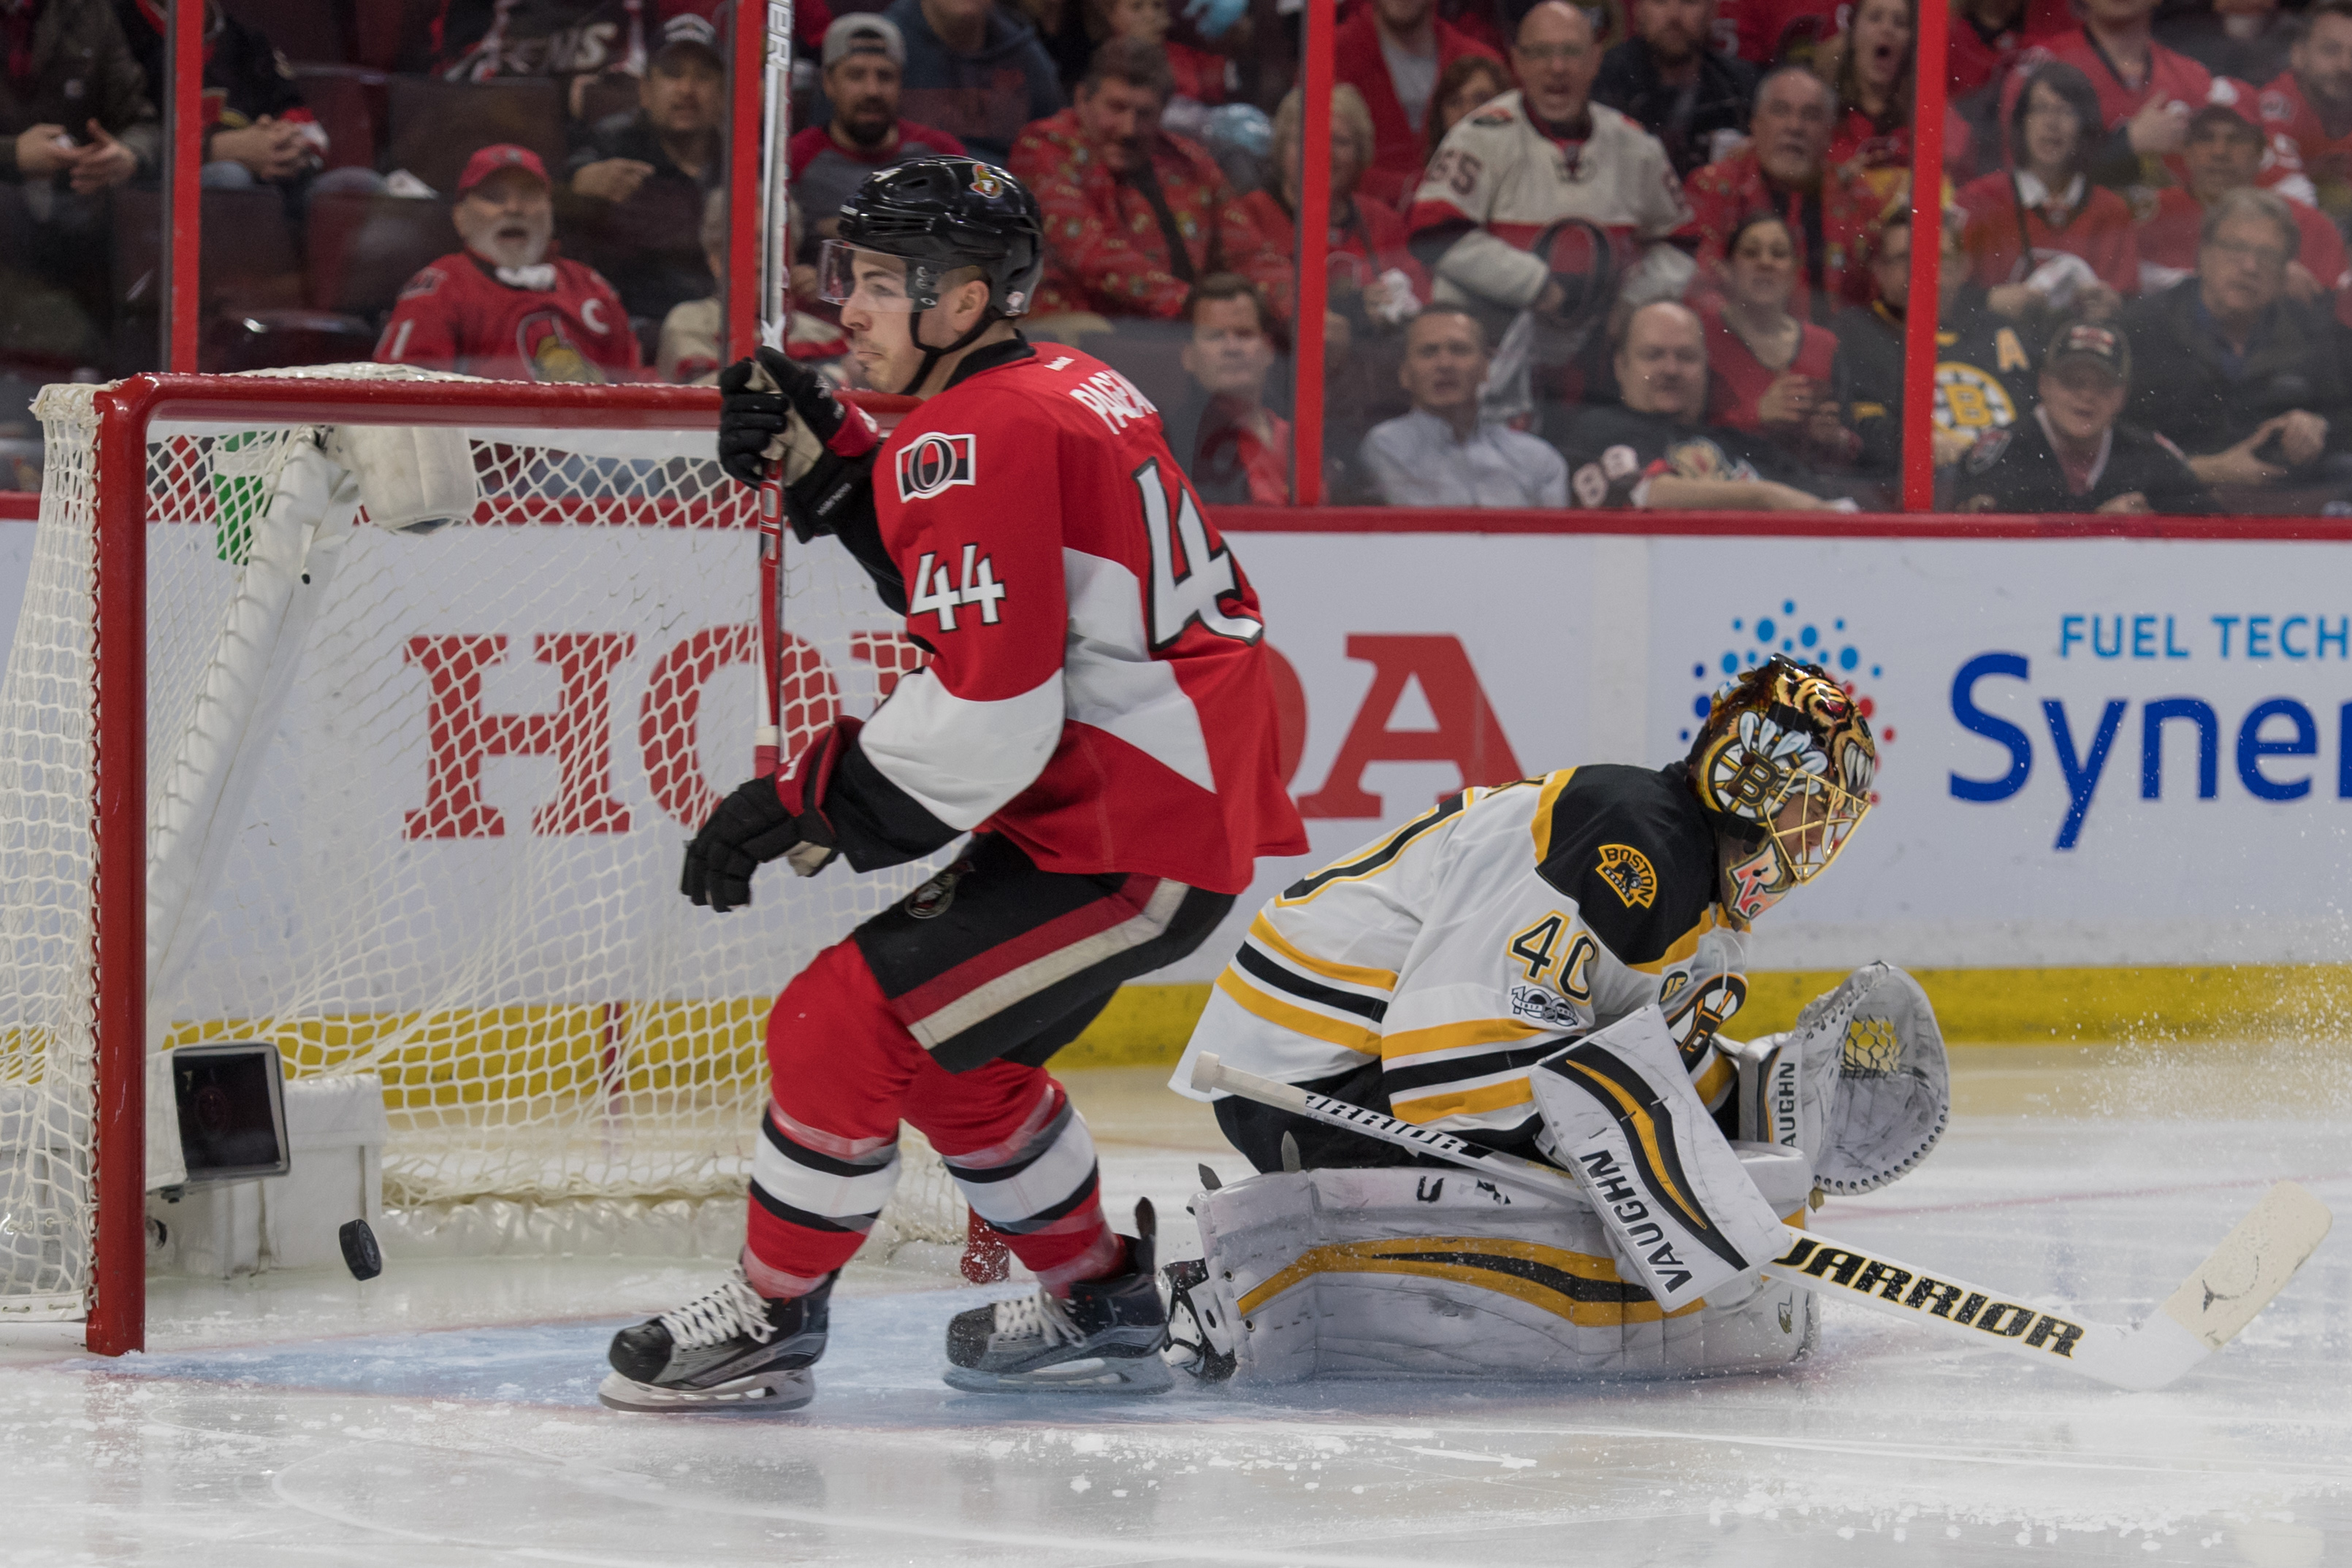 10024656-nhl-stanley-cup-playoffs-boston-bruins-at-ottawa-senators